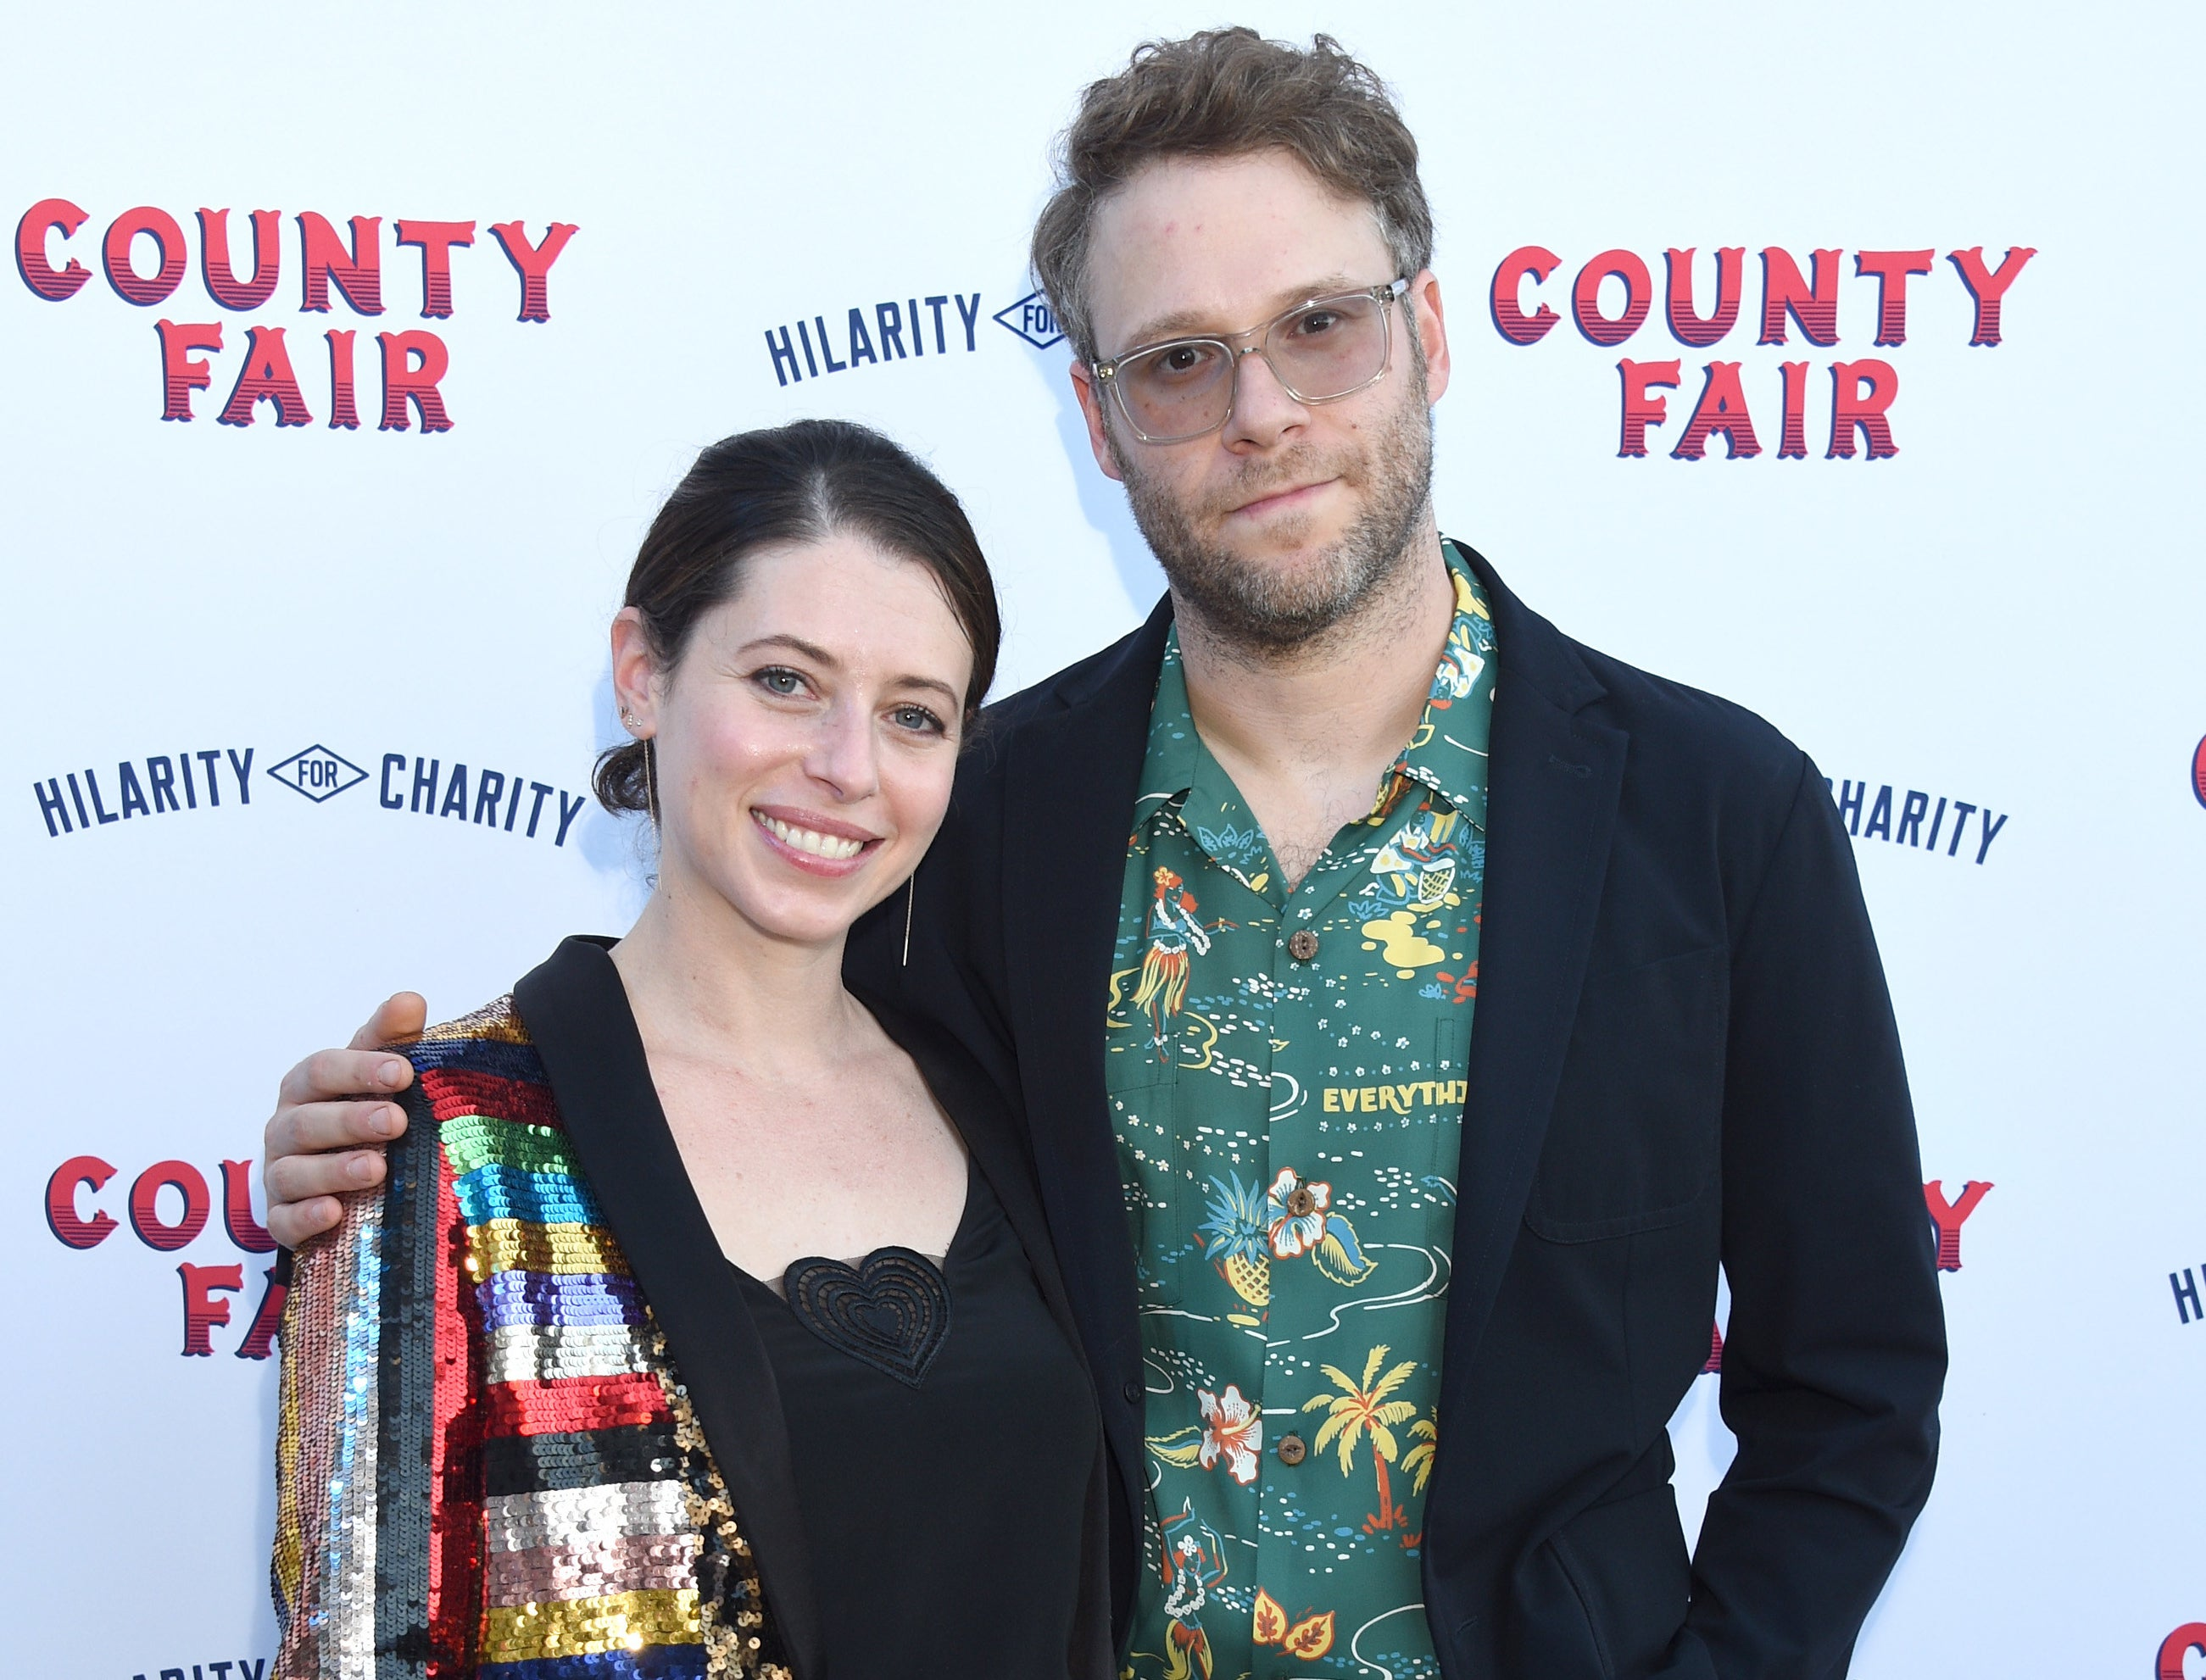 Lauren and Seth pose on a red carpet